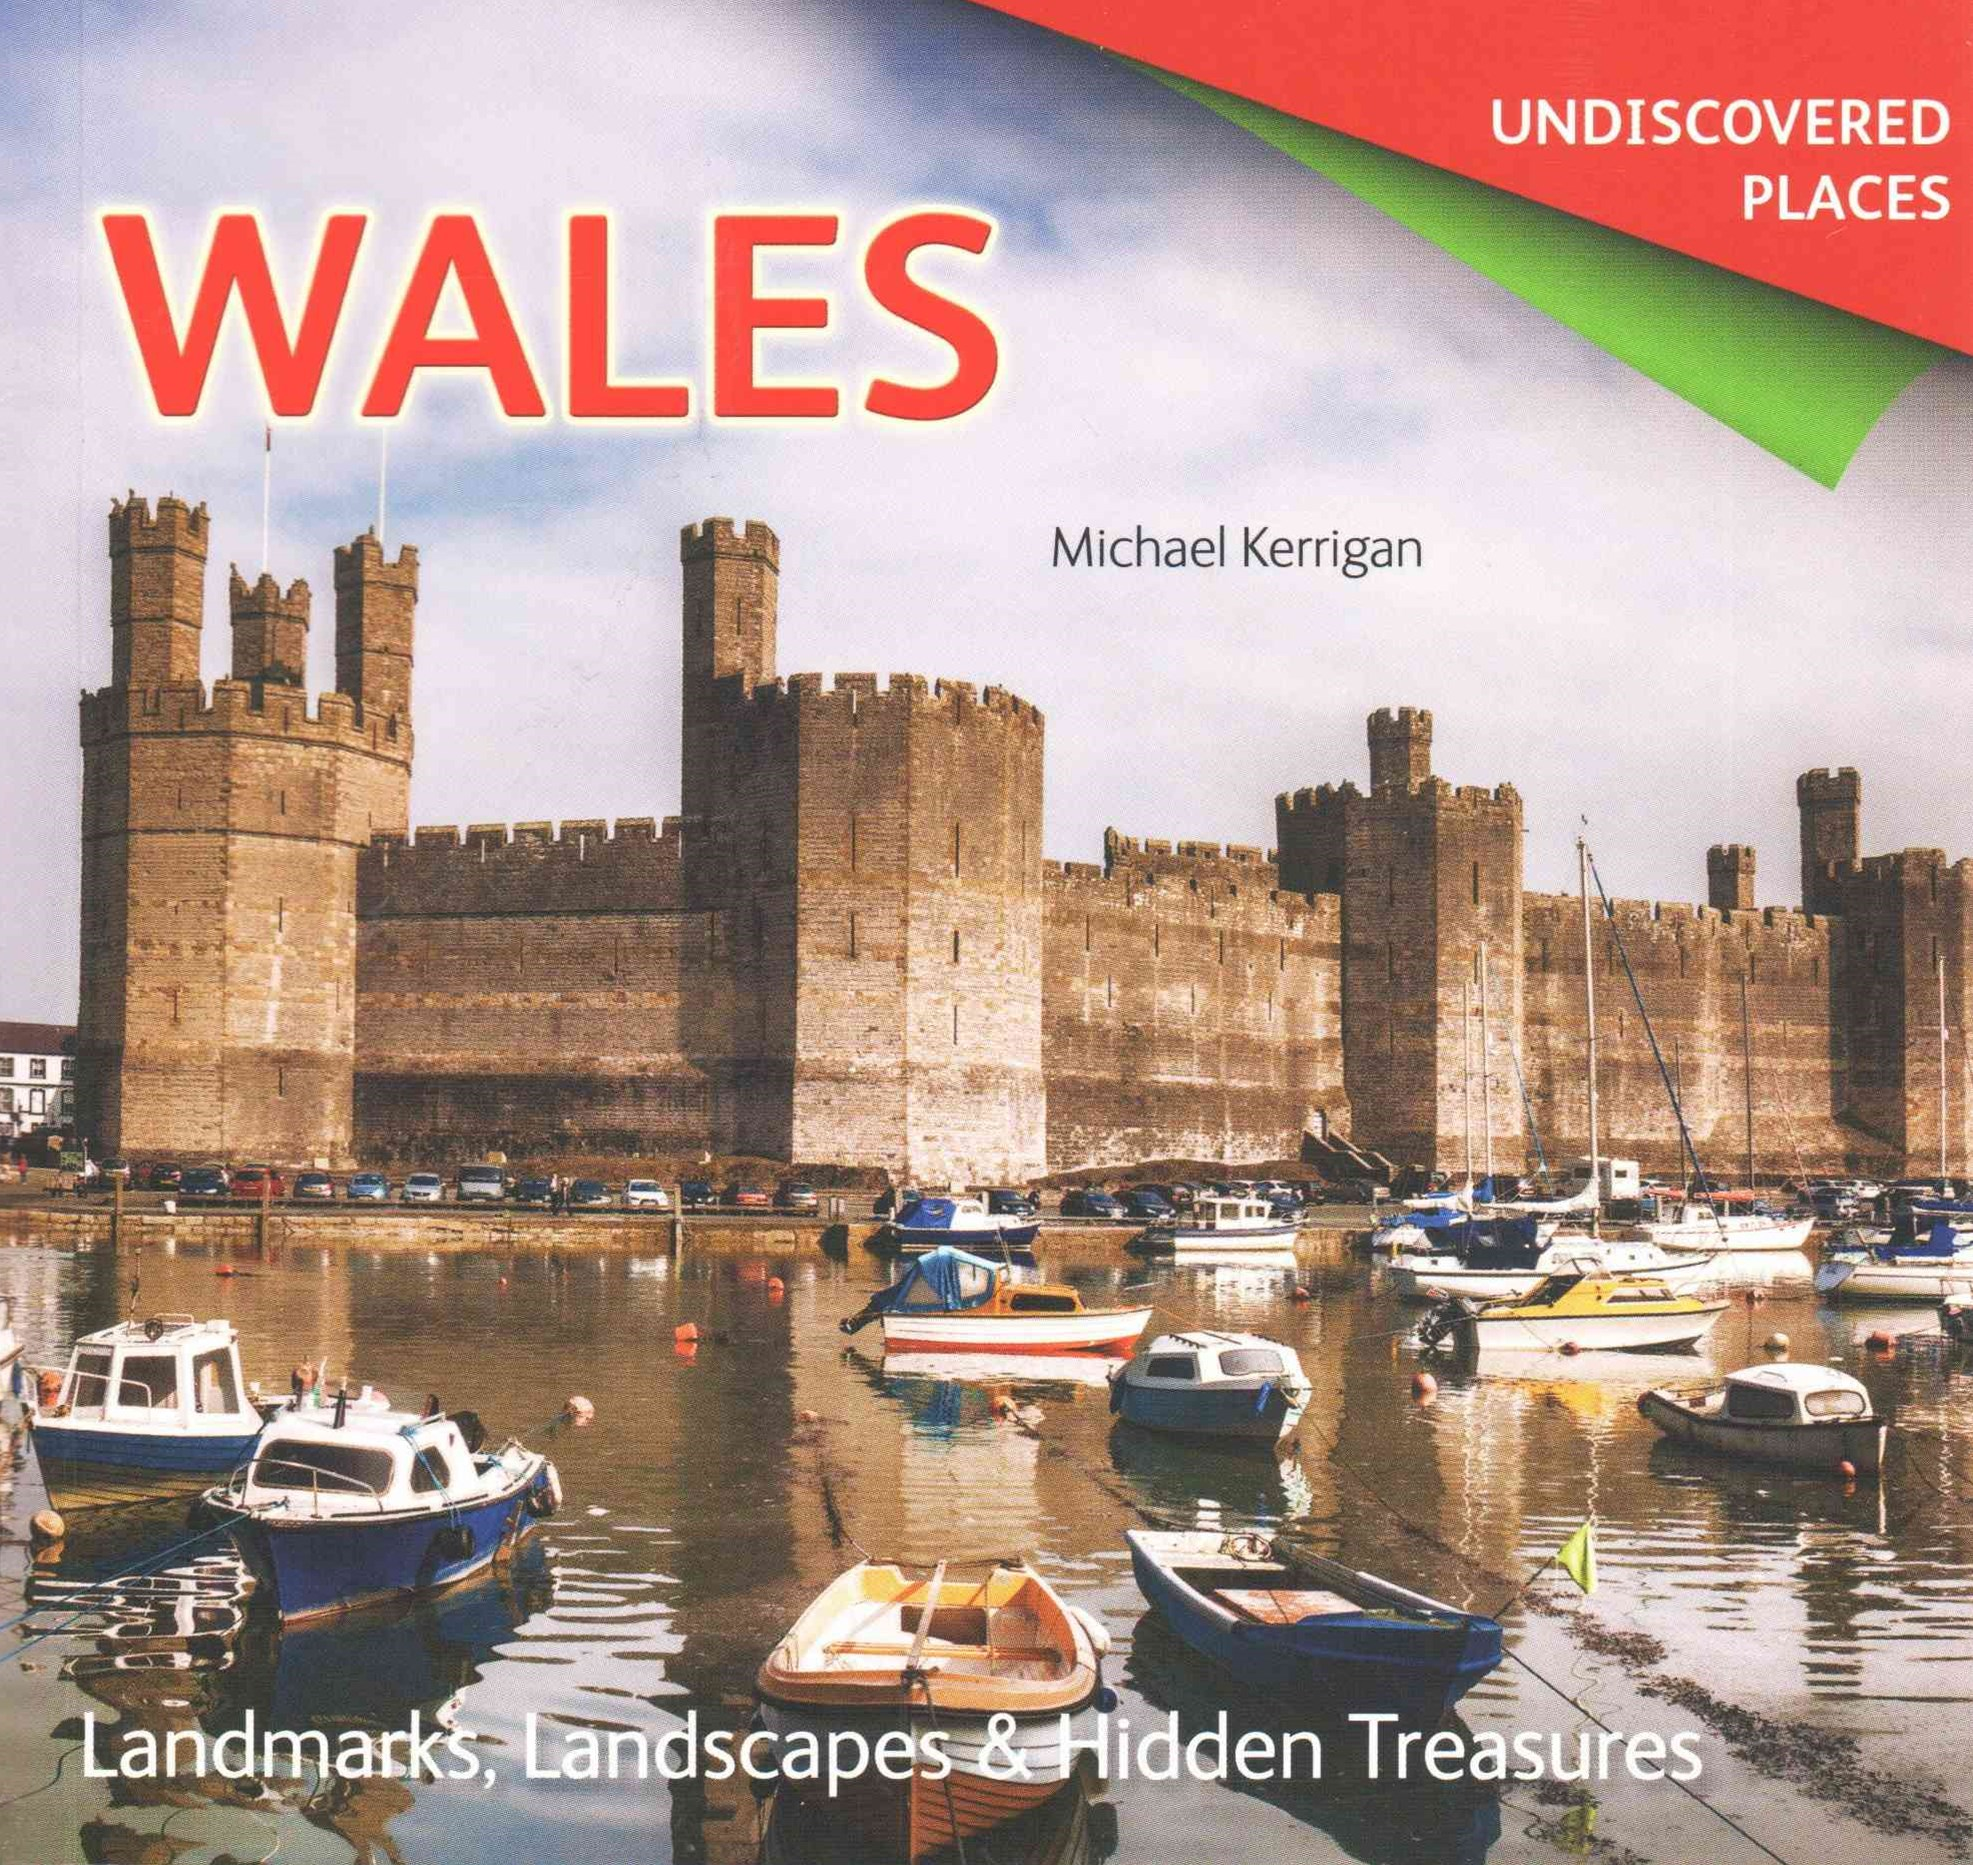 Undiscovered Places: Wales